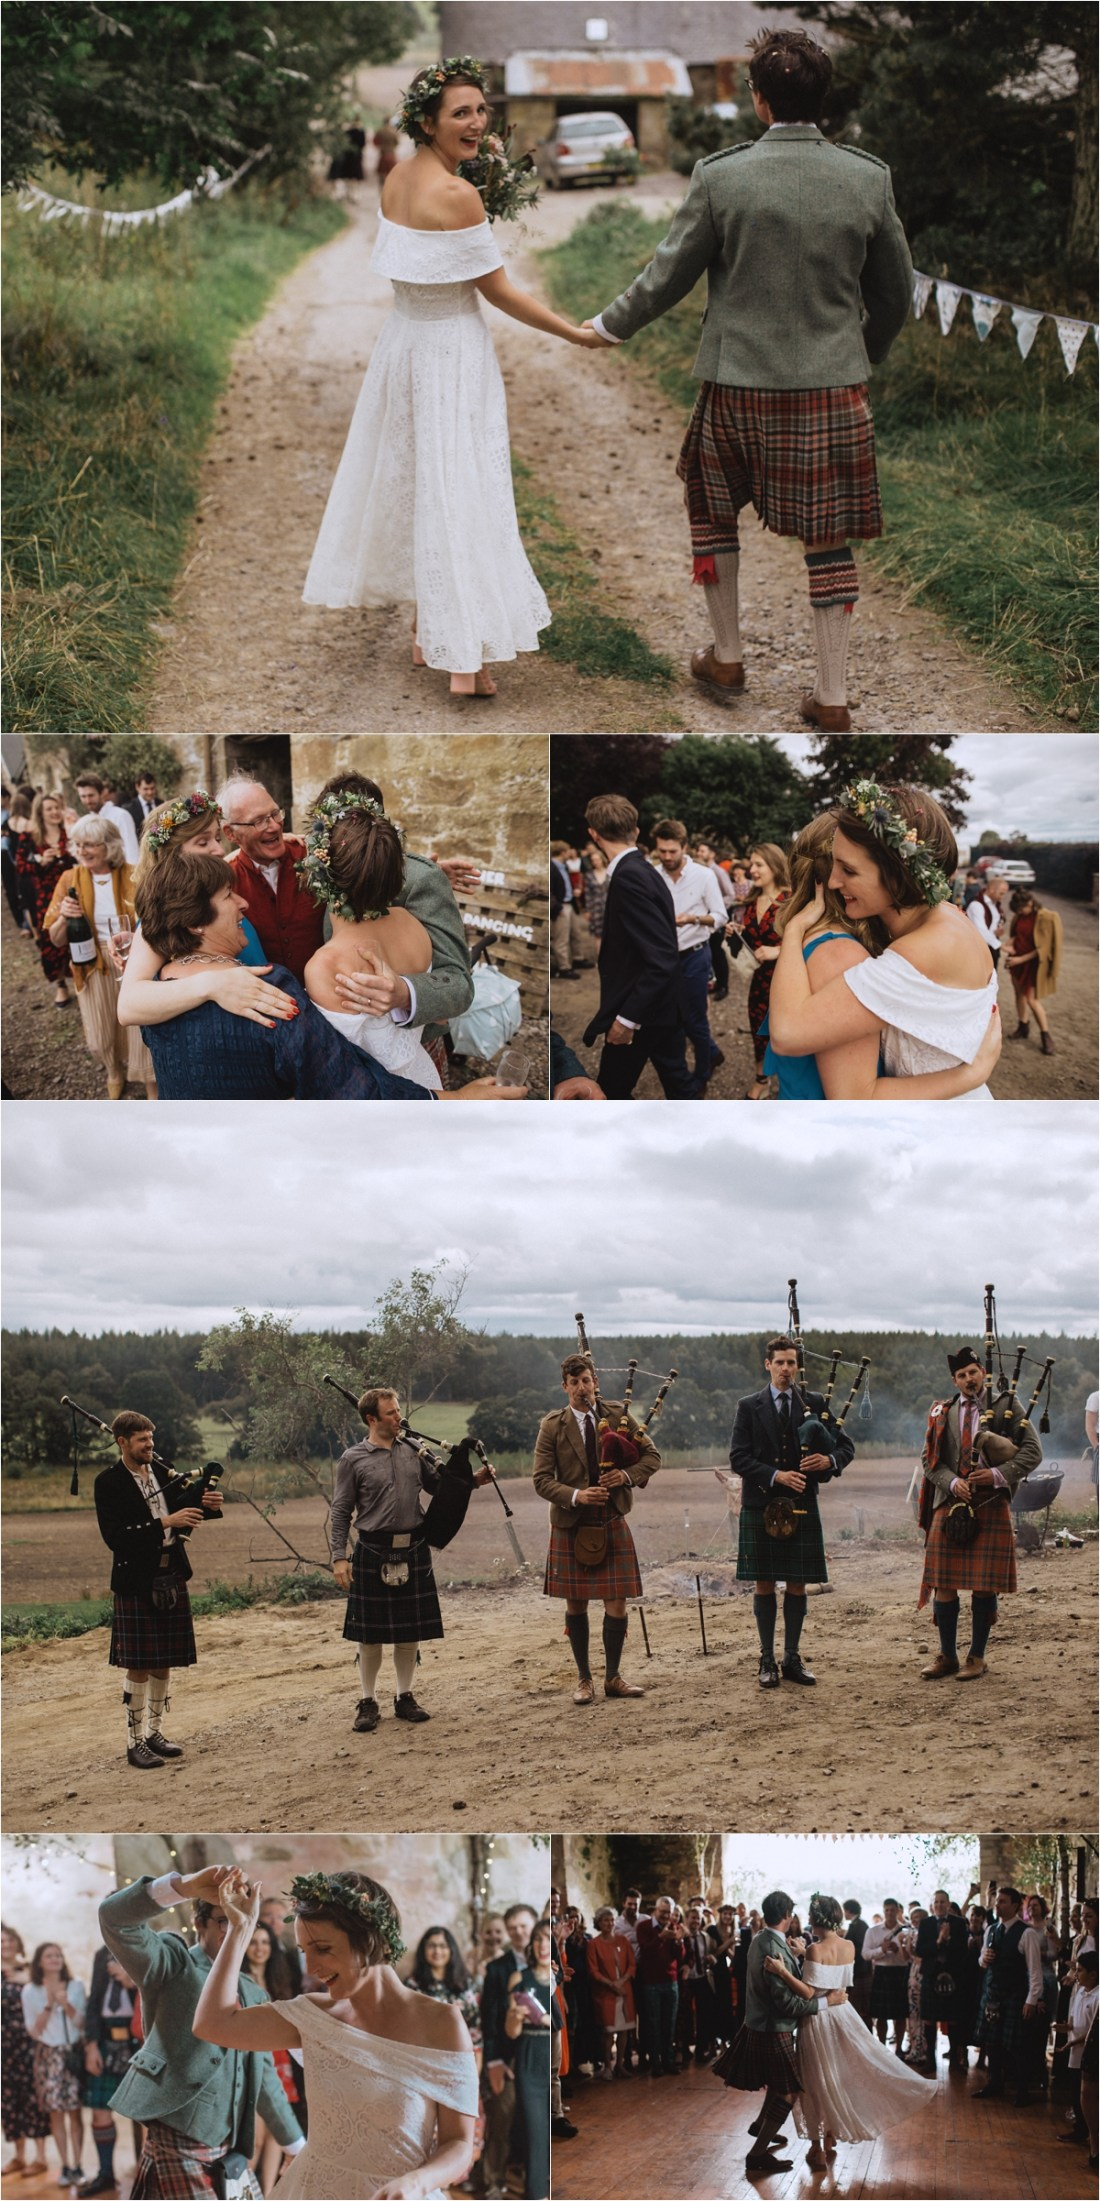 A Scottish sheep farm wedding by Fox & Bear Photography